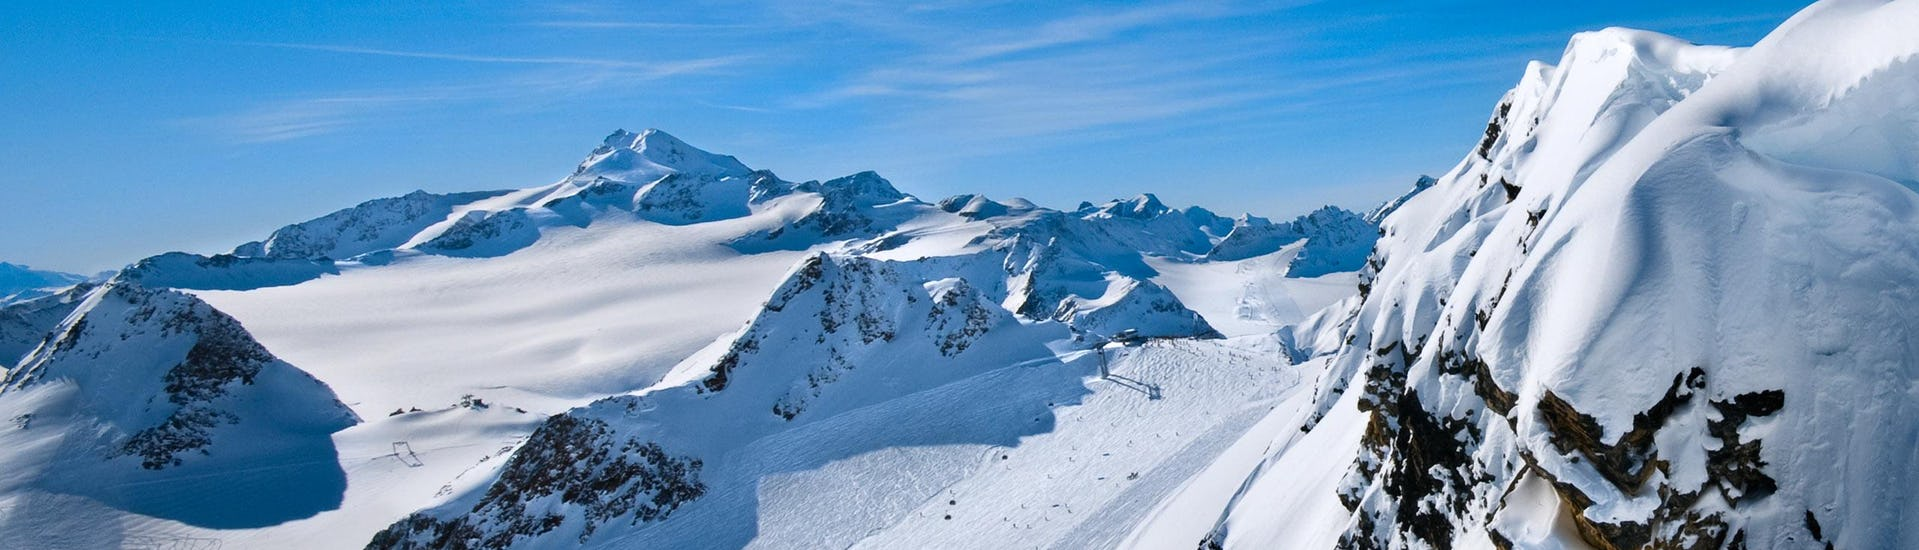 A view of a snowy mountain top in the ski resort of Corvatsch - Silvaplana, where ski schools gather to start their ski lessons.